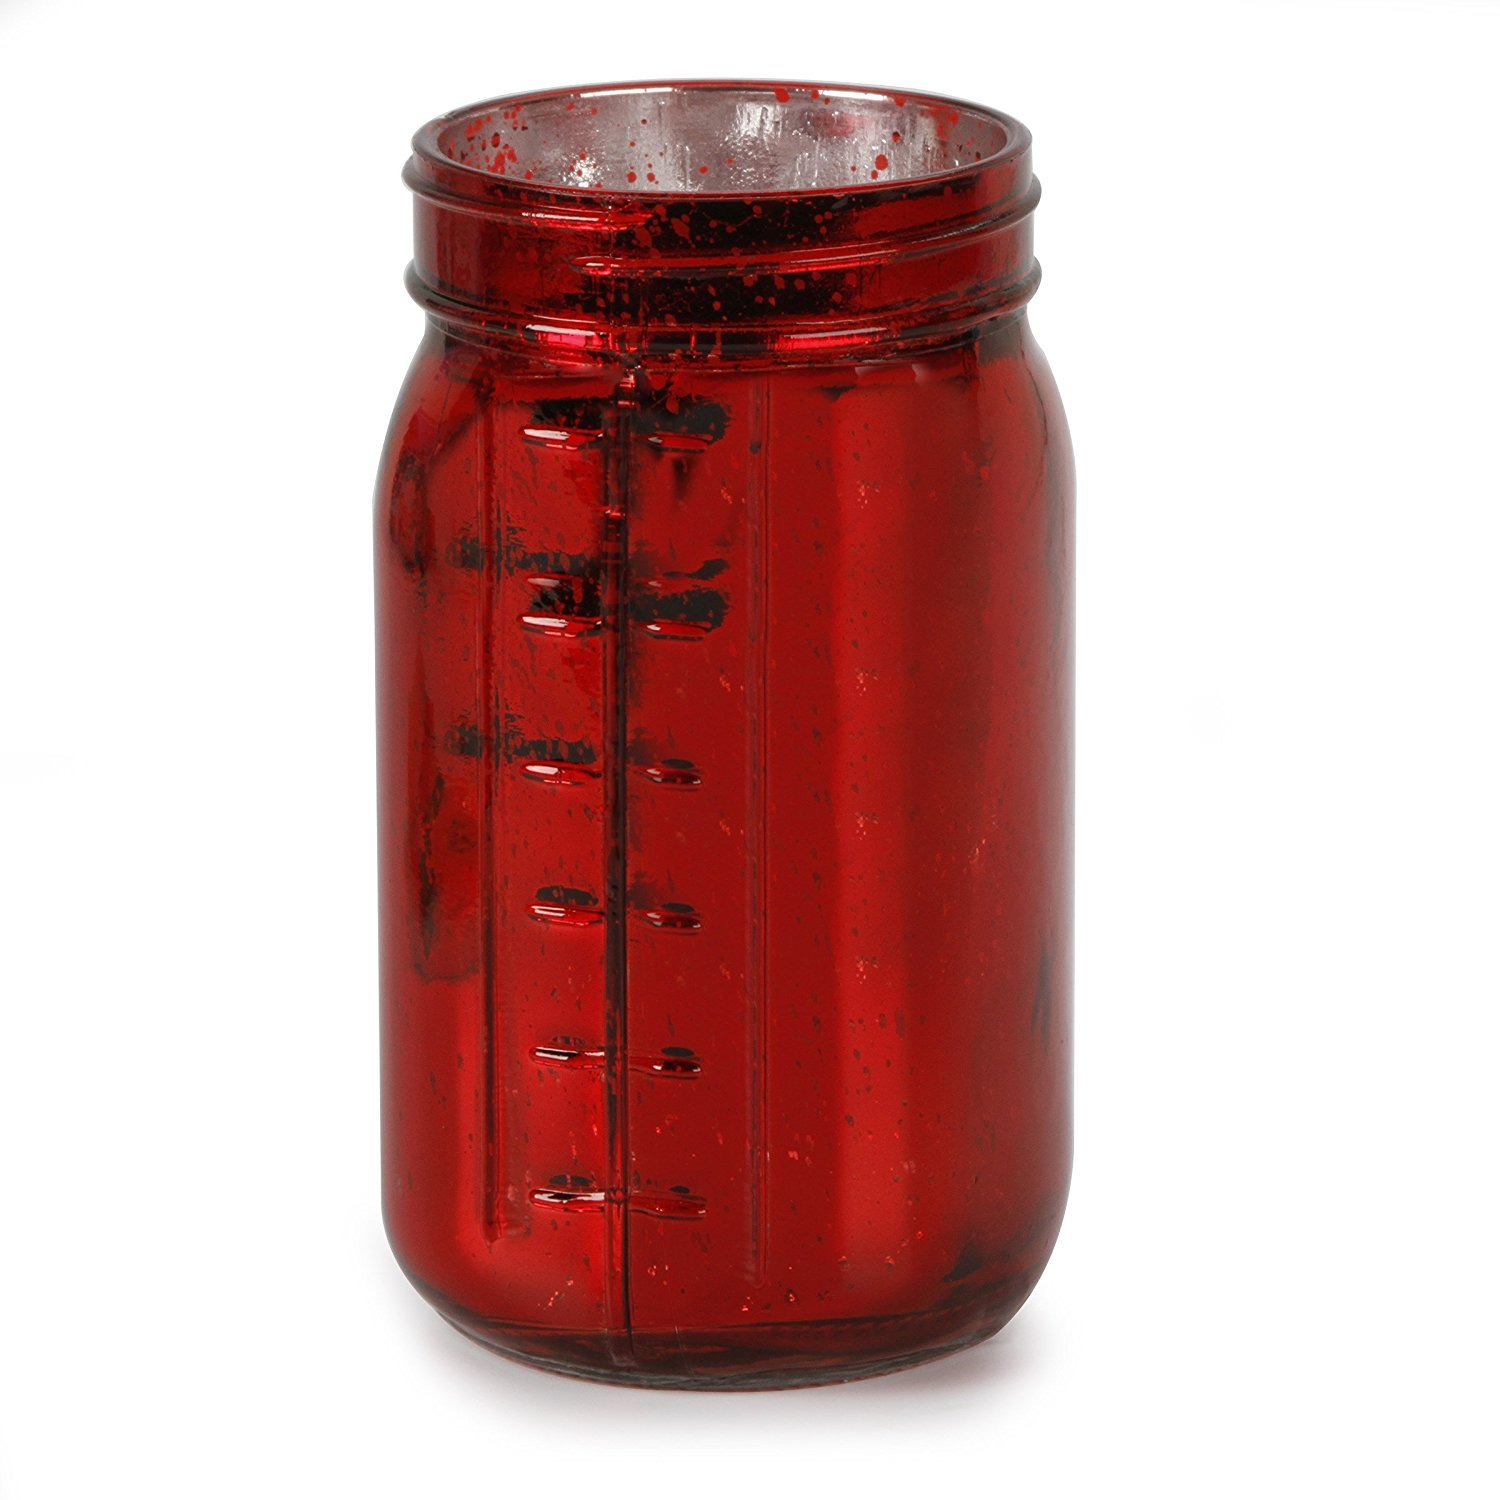 Craft Floral Mason Jar - Red Mercury Glass, 3.5'' x 6.5'' (12 Jars) by ArtVerse